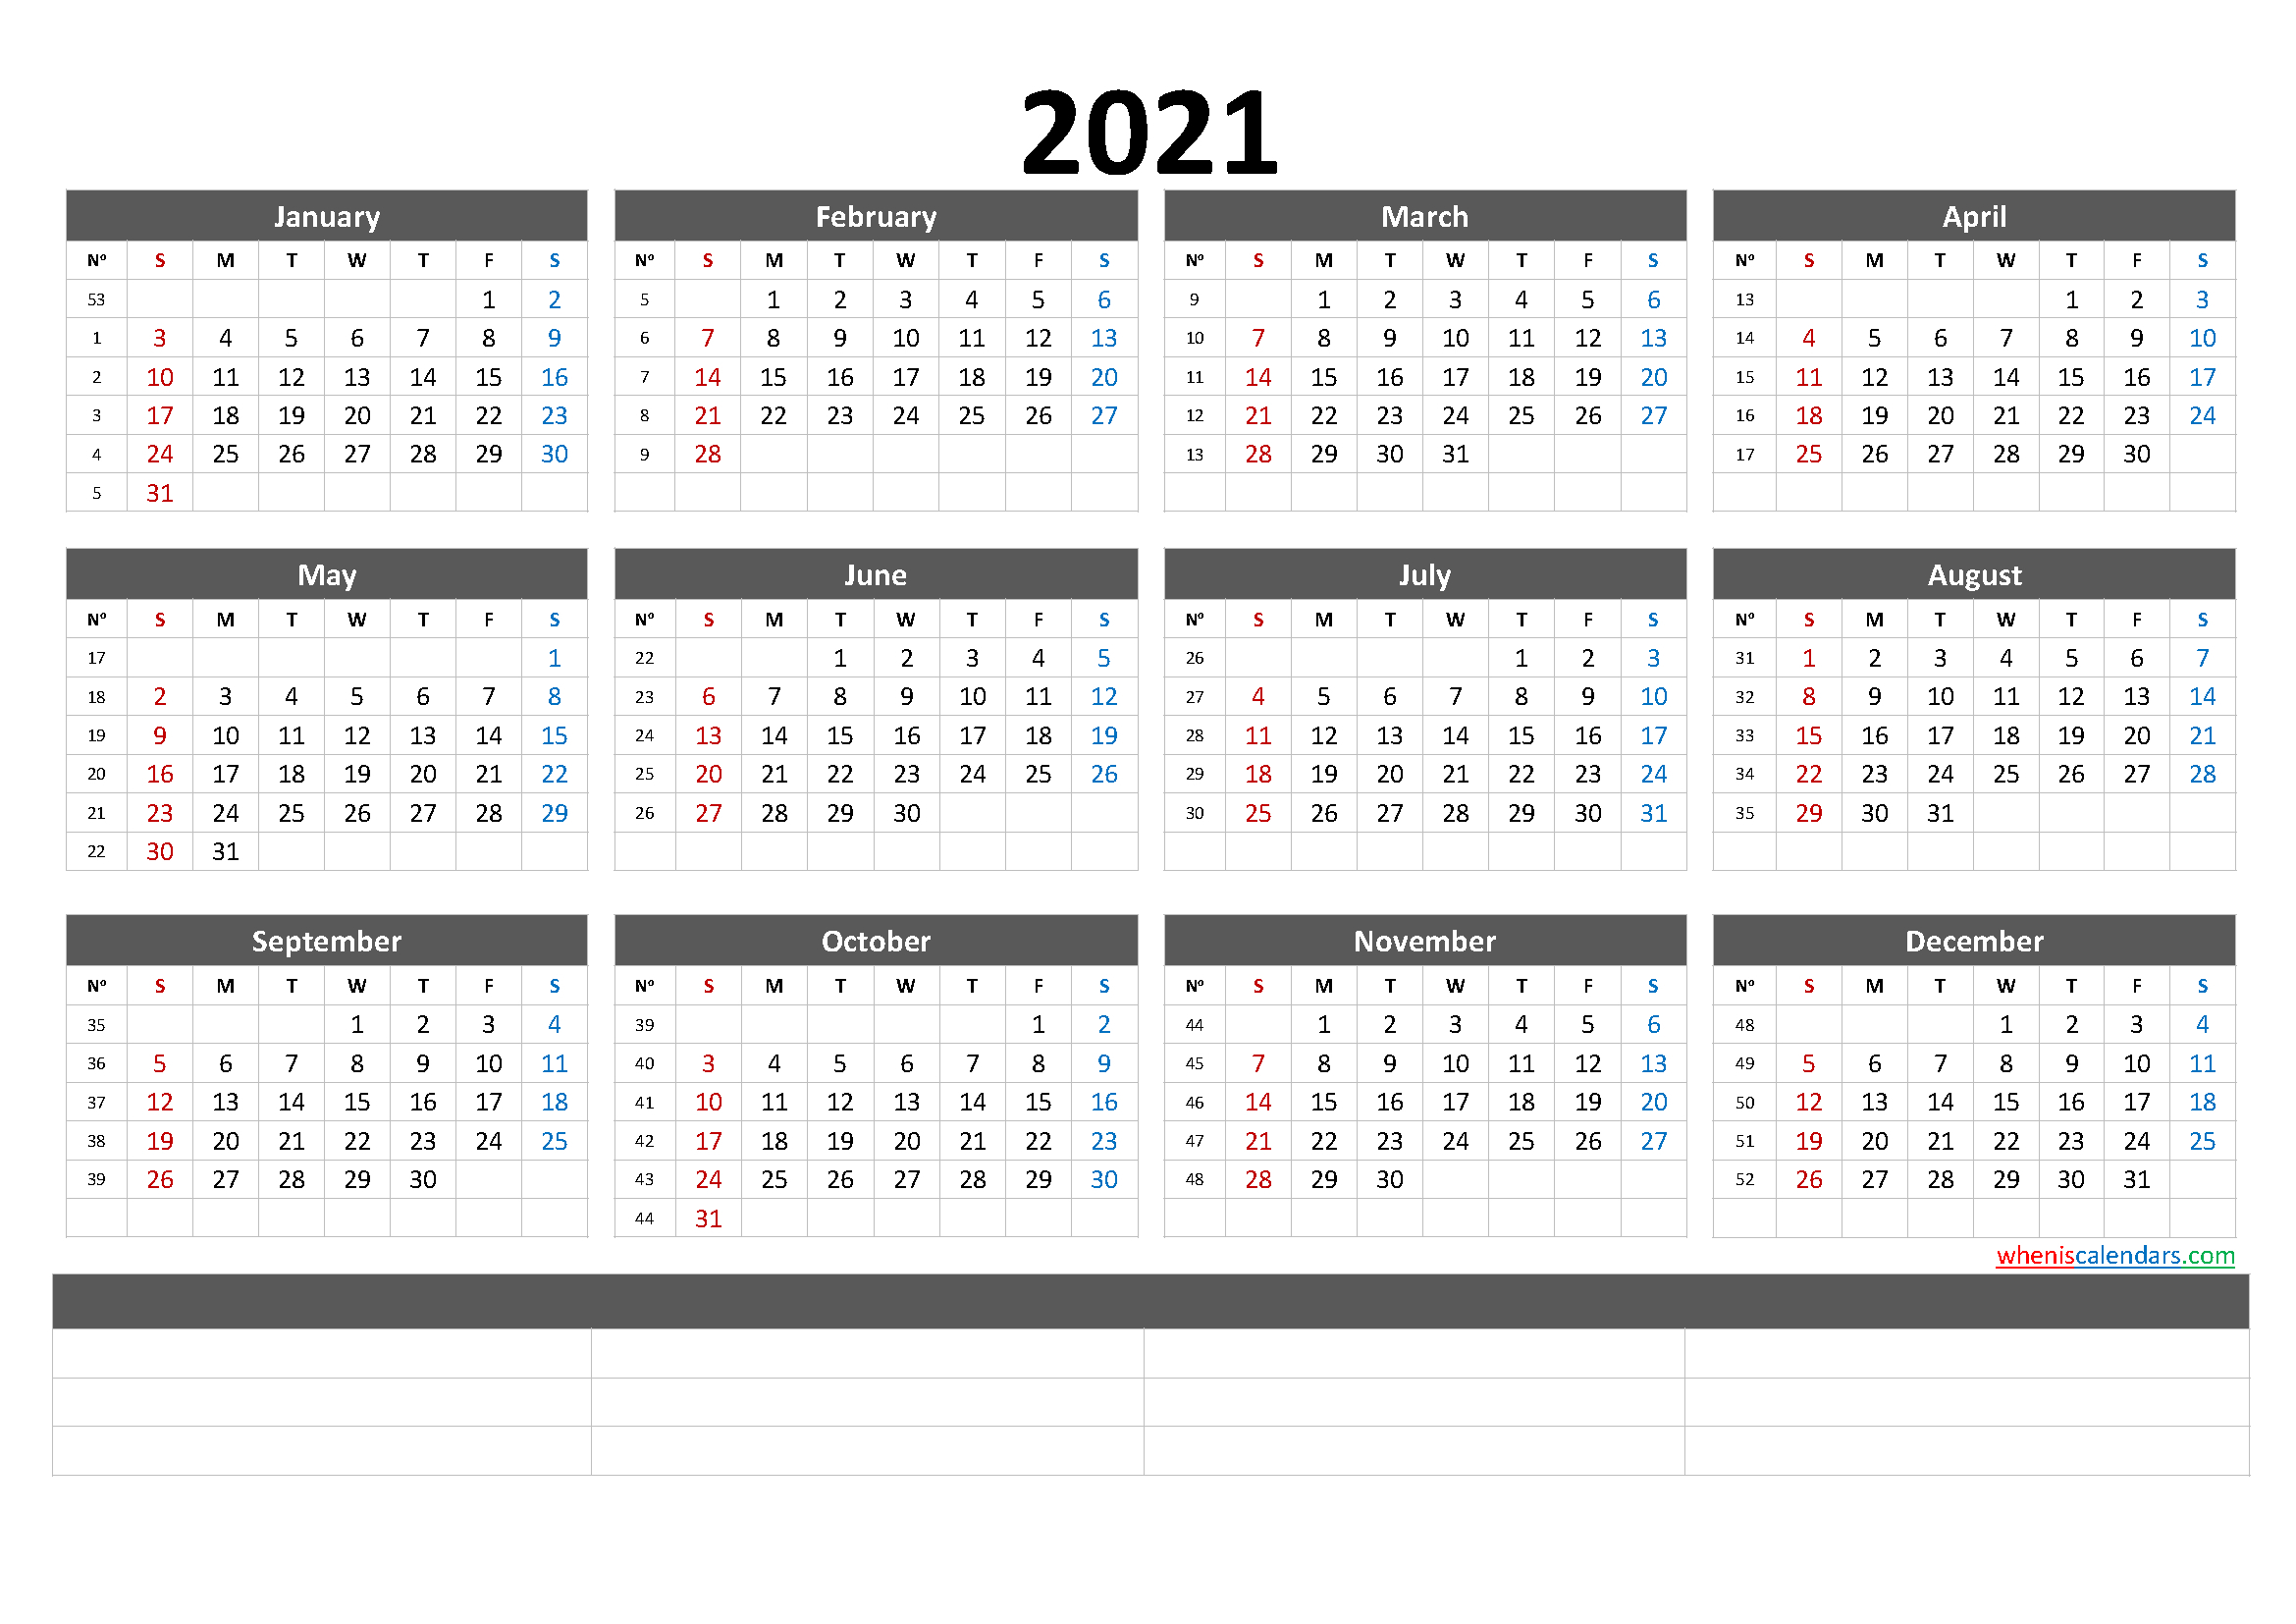 Free Printable 2021 Calendarmonth (6 Templates) for Monthly Fill In Printable Calendar 2021